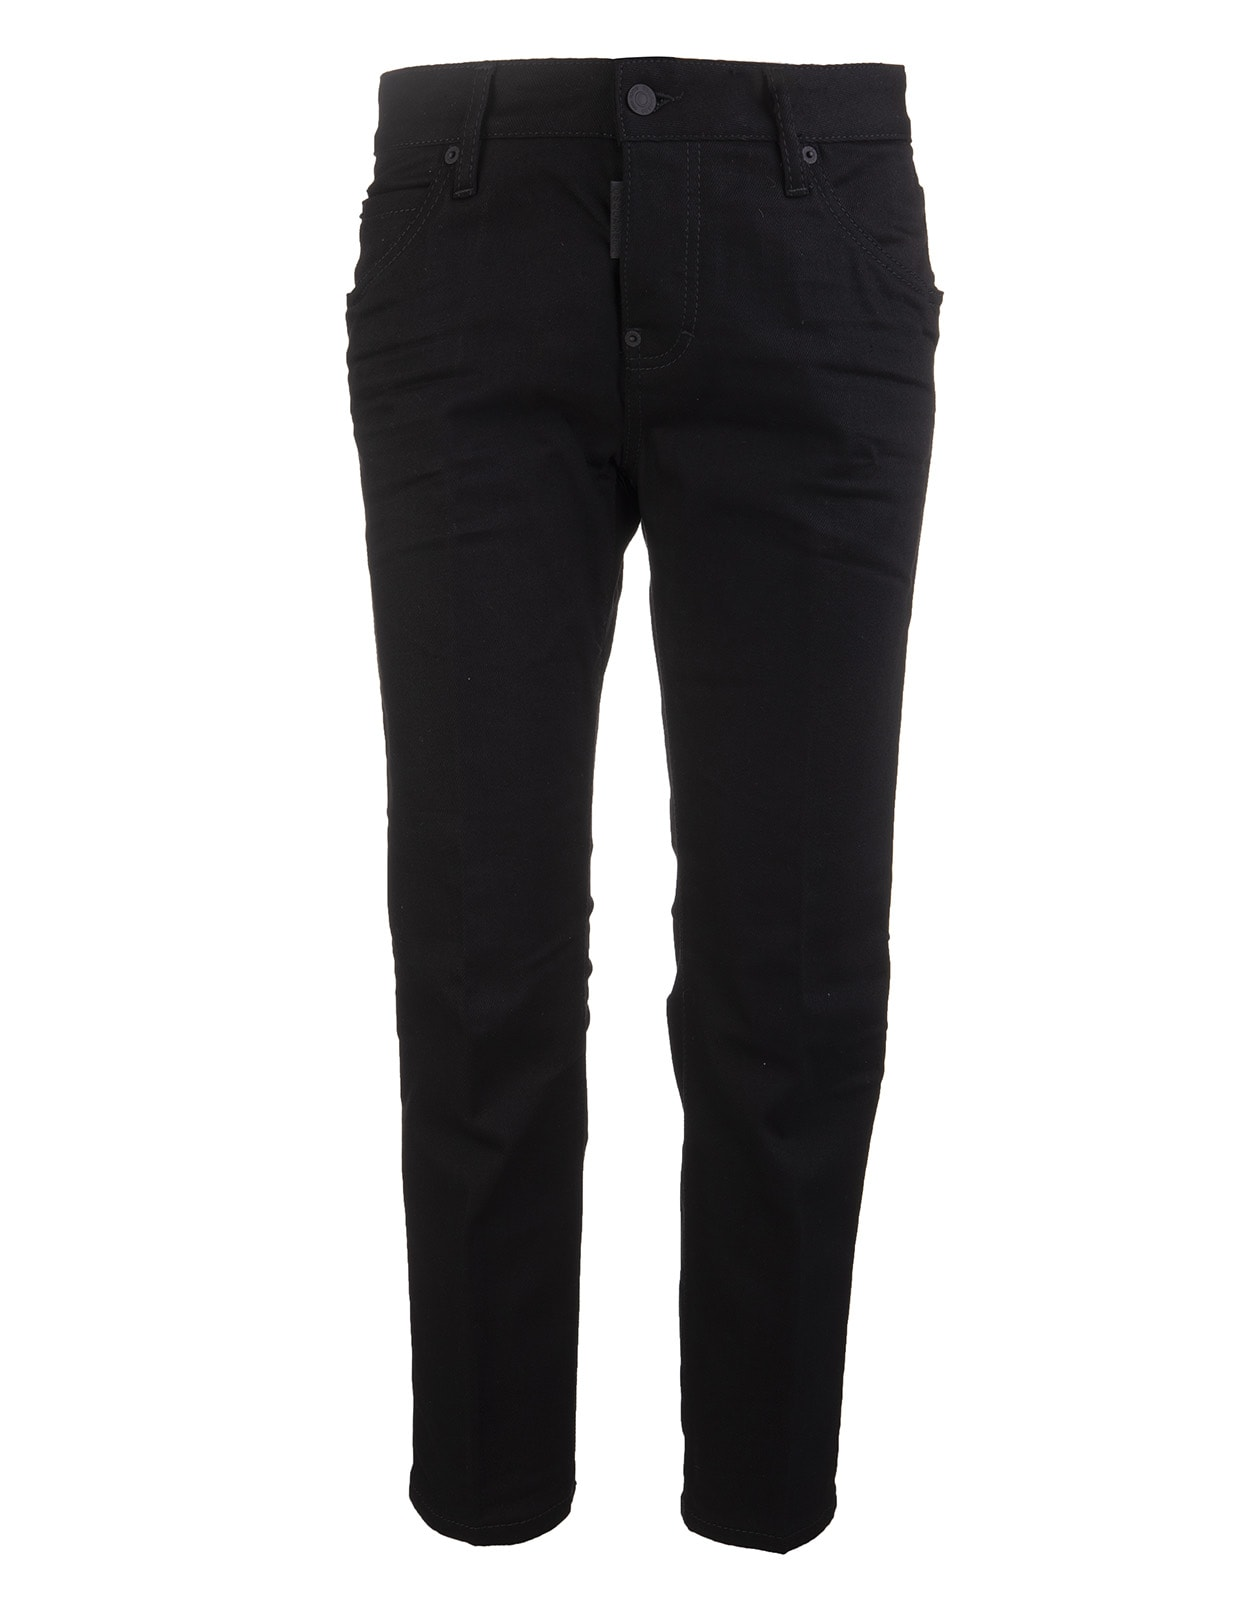 Dsquared2 BLACK COOL GIRL CROPPED WOMAN JEANS